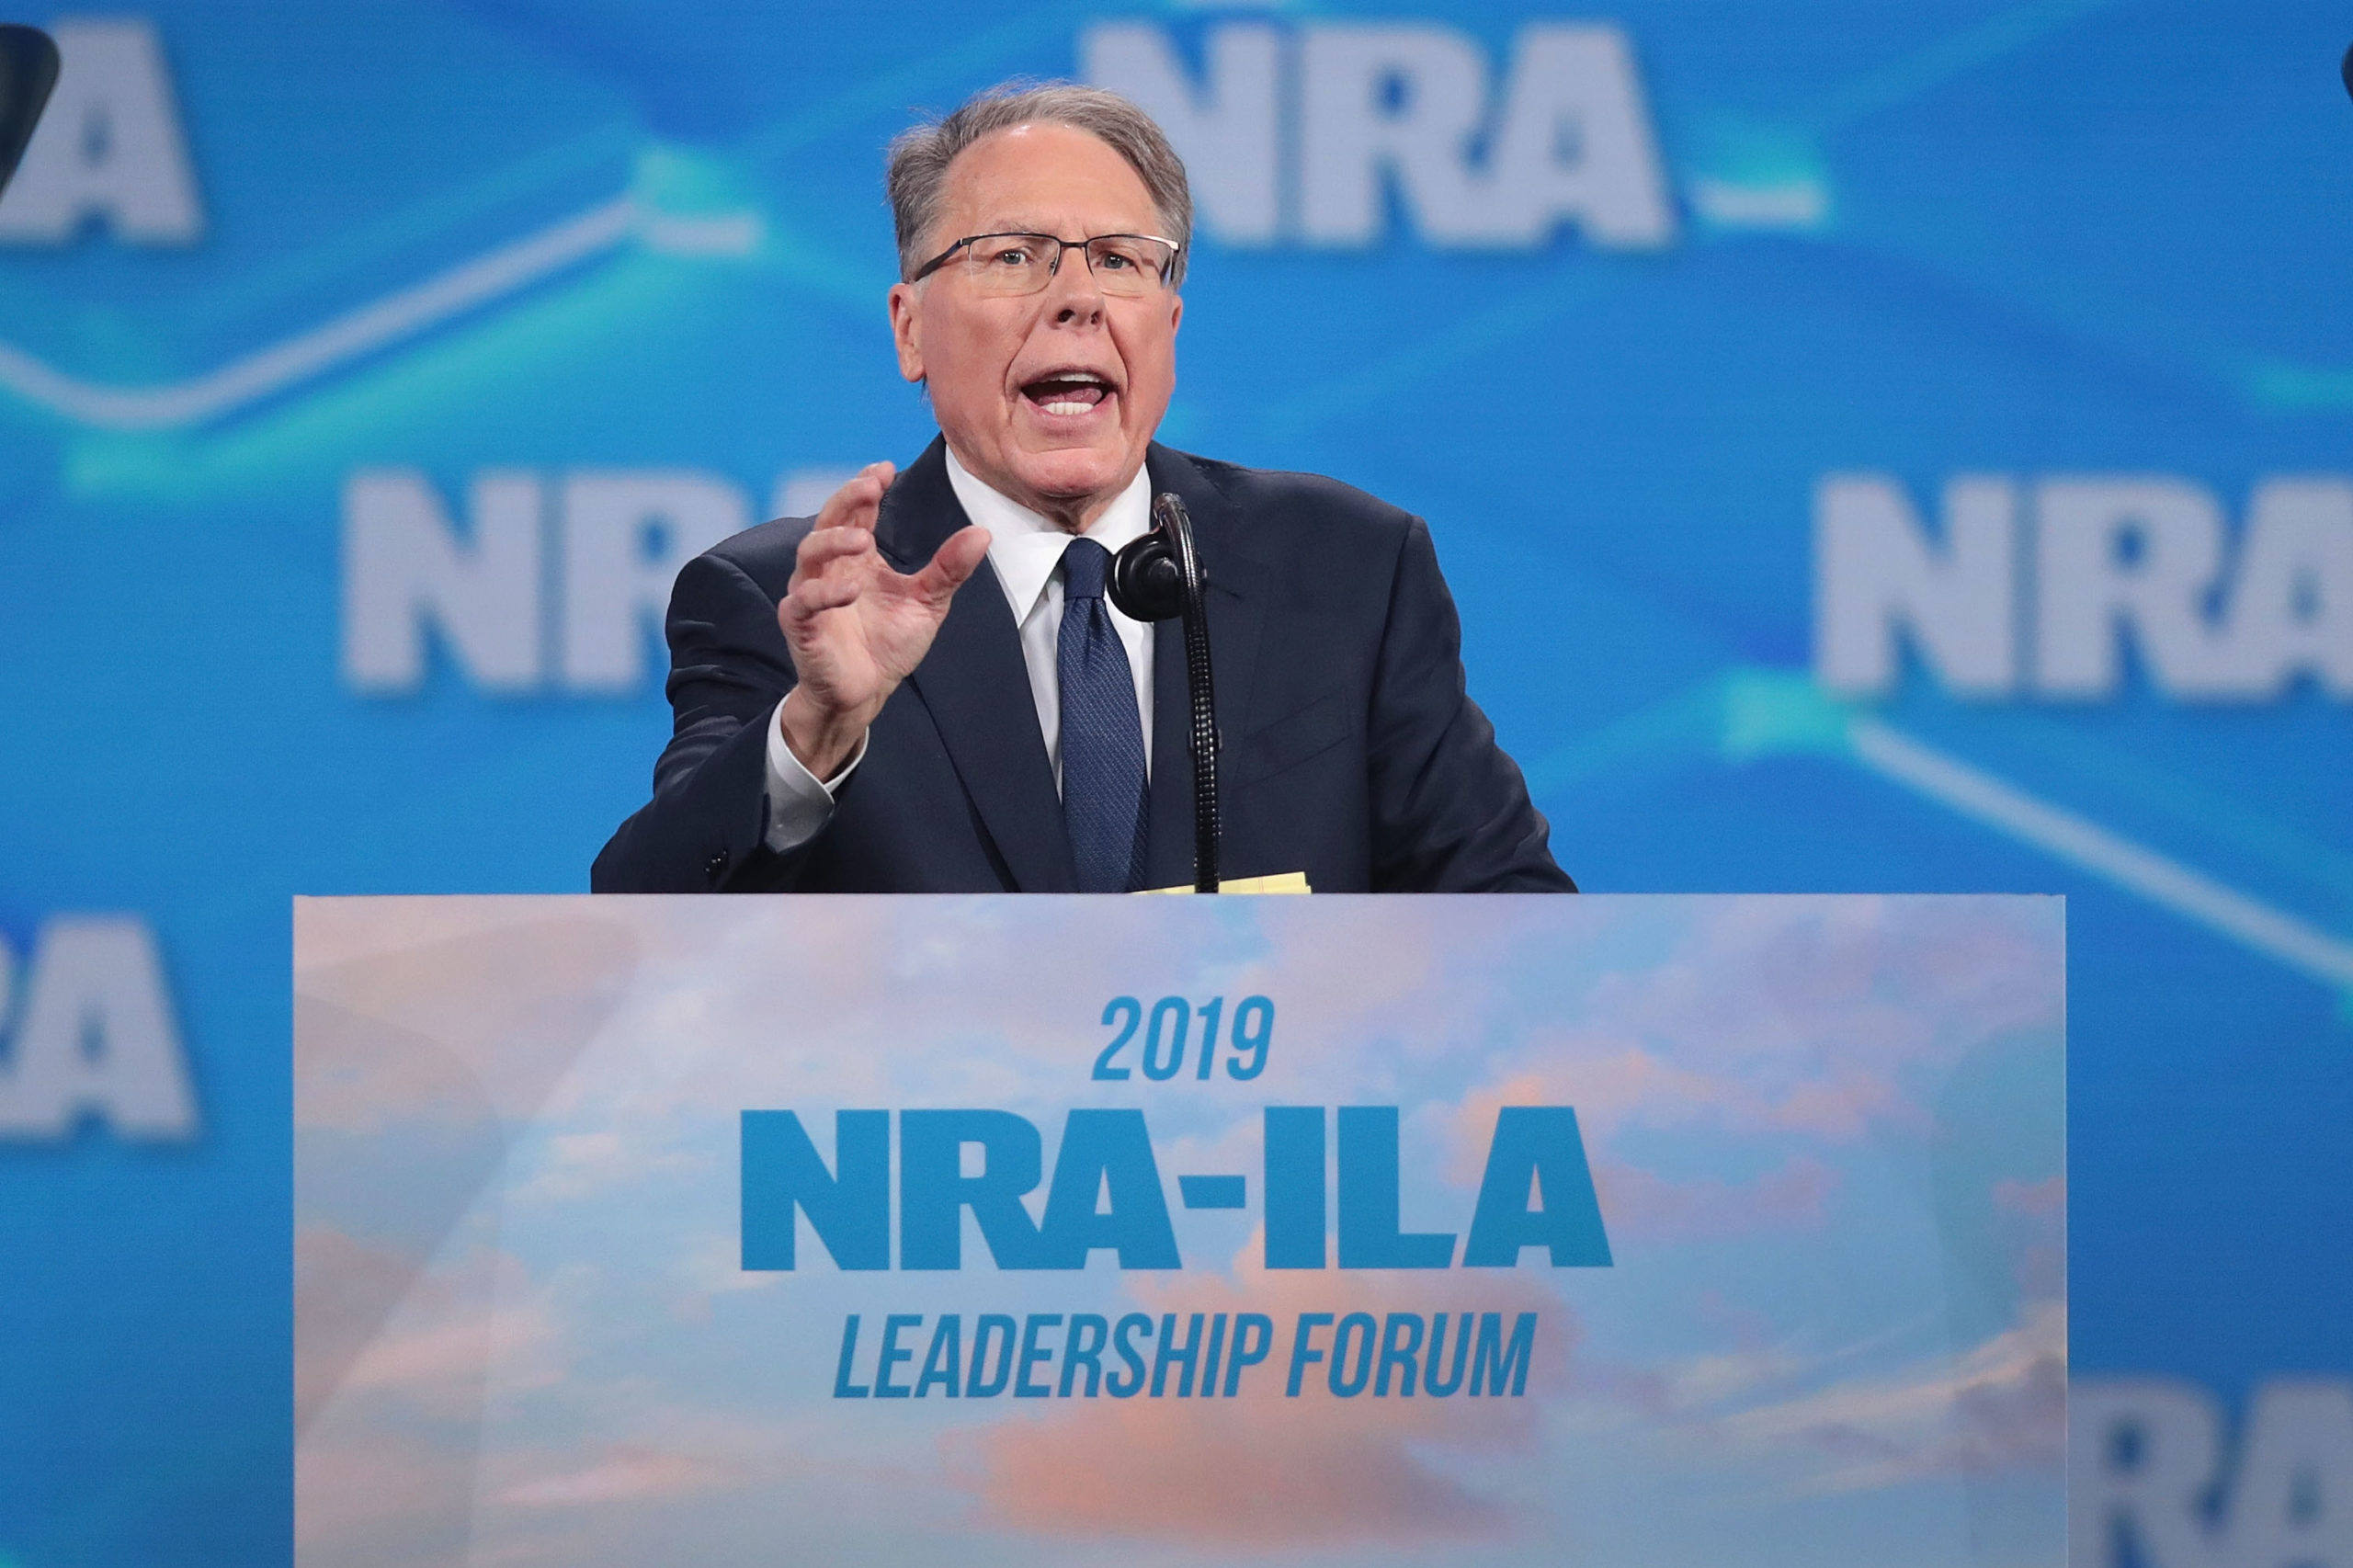 Wayne LaPierre, NRA vice president and CEO, speaks to guests at the NRA-ILA Leadership Forum in 2019 in Indianapolis, Indiana. (Scott Olson/Getty Images)